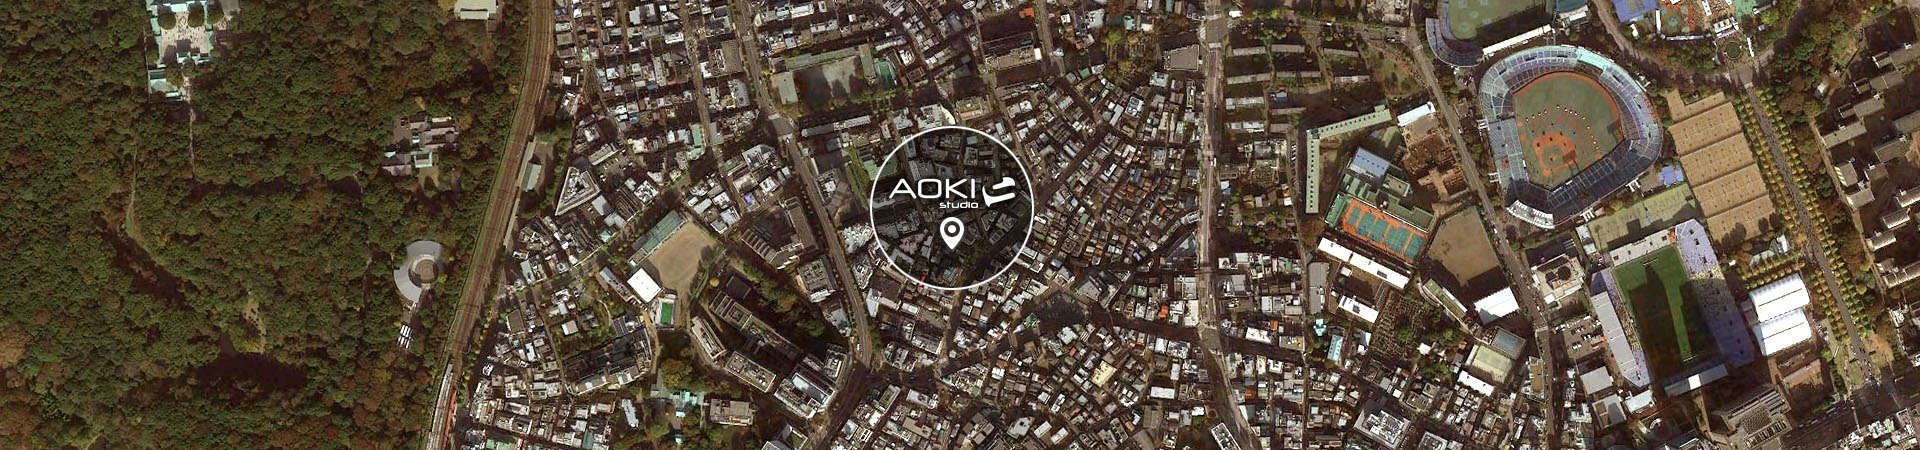 Find AOKIstudio on Google Maps